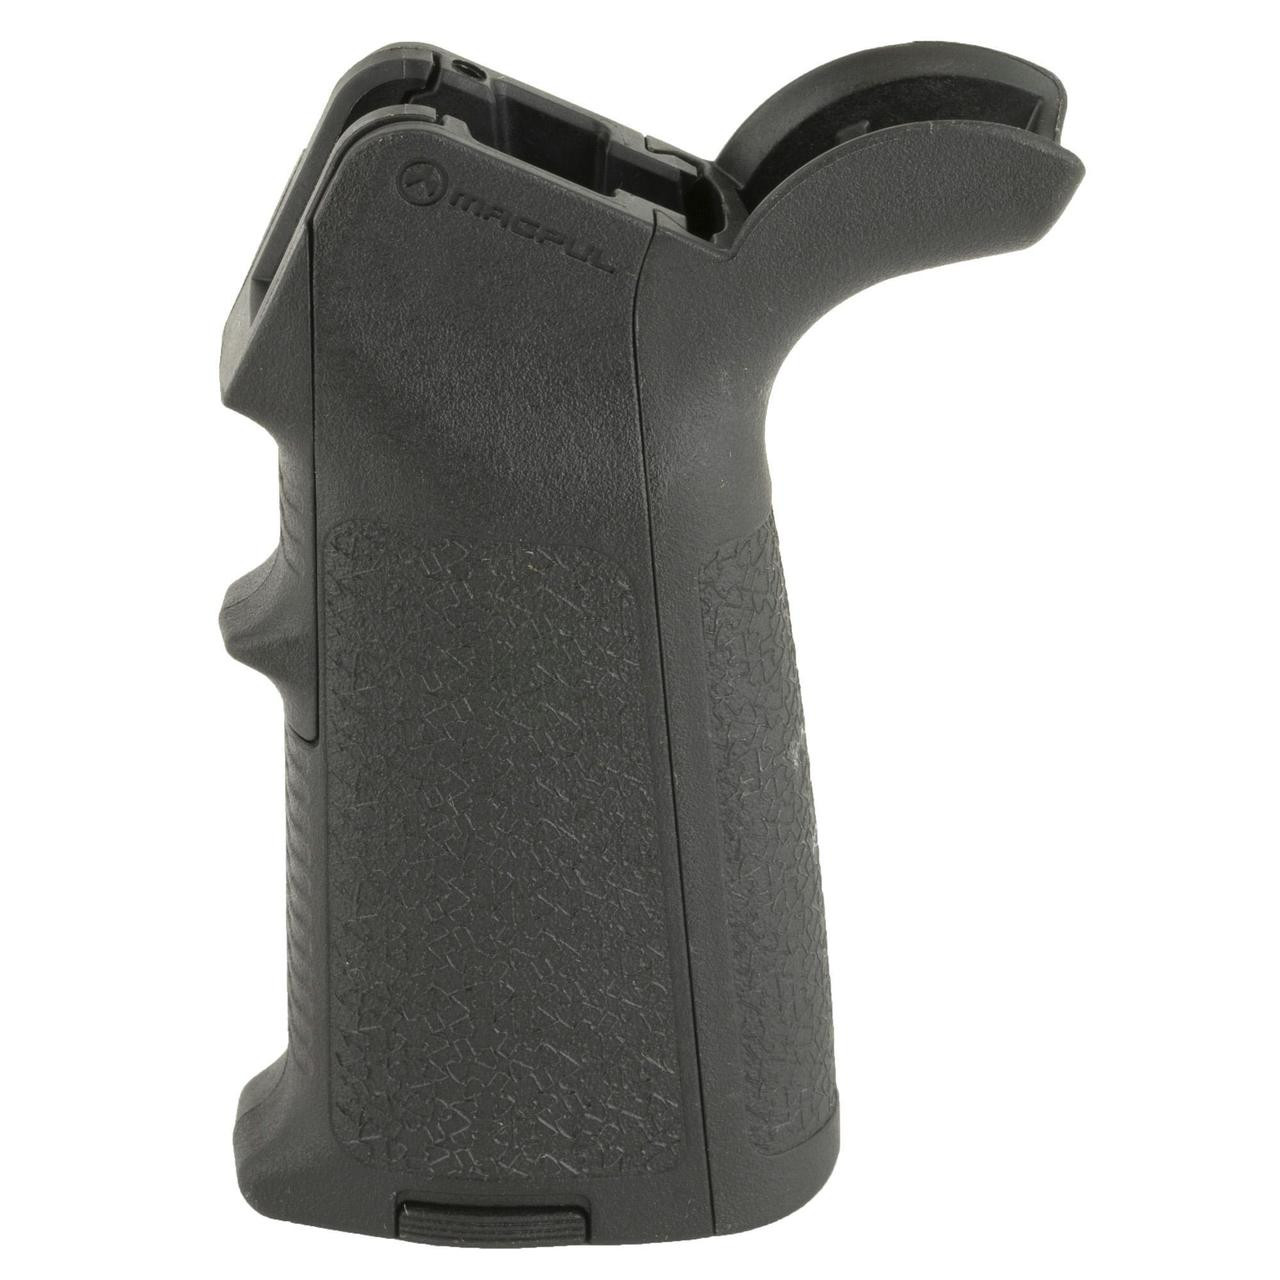 Magpul Miad Ar10 Gen1.1 Grip Kit Black